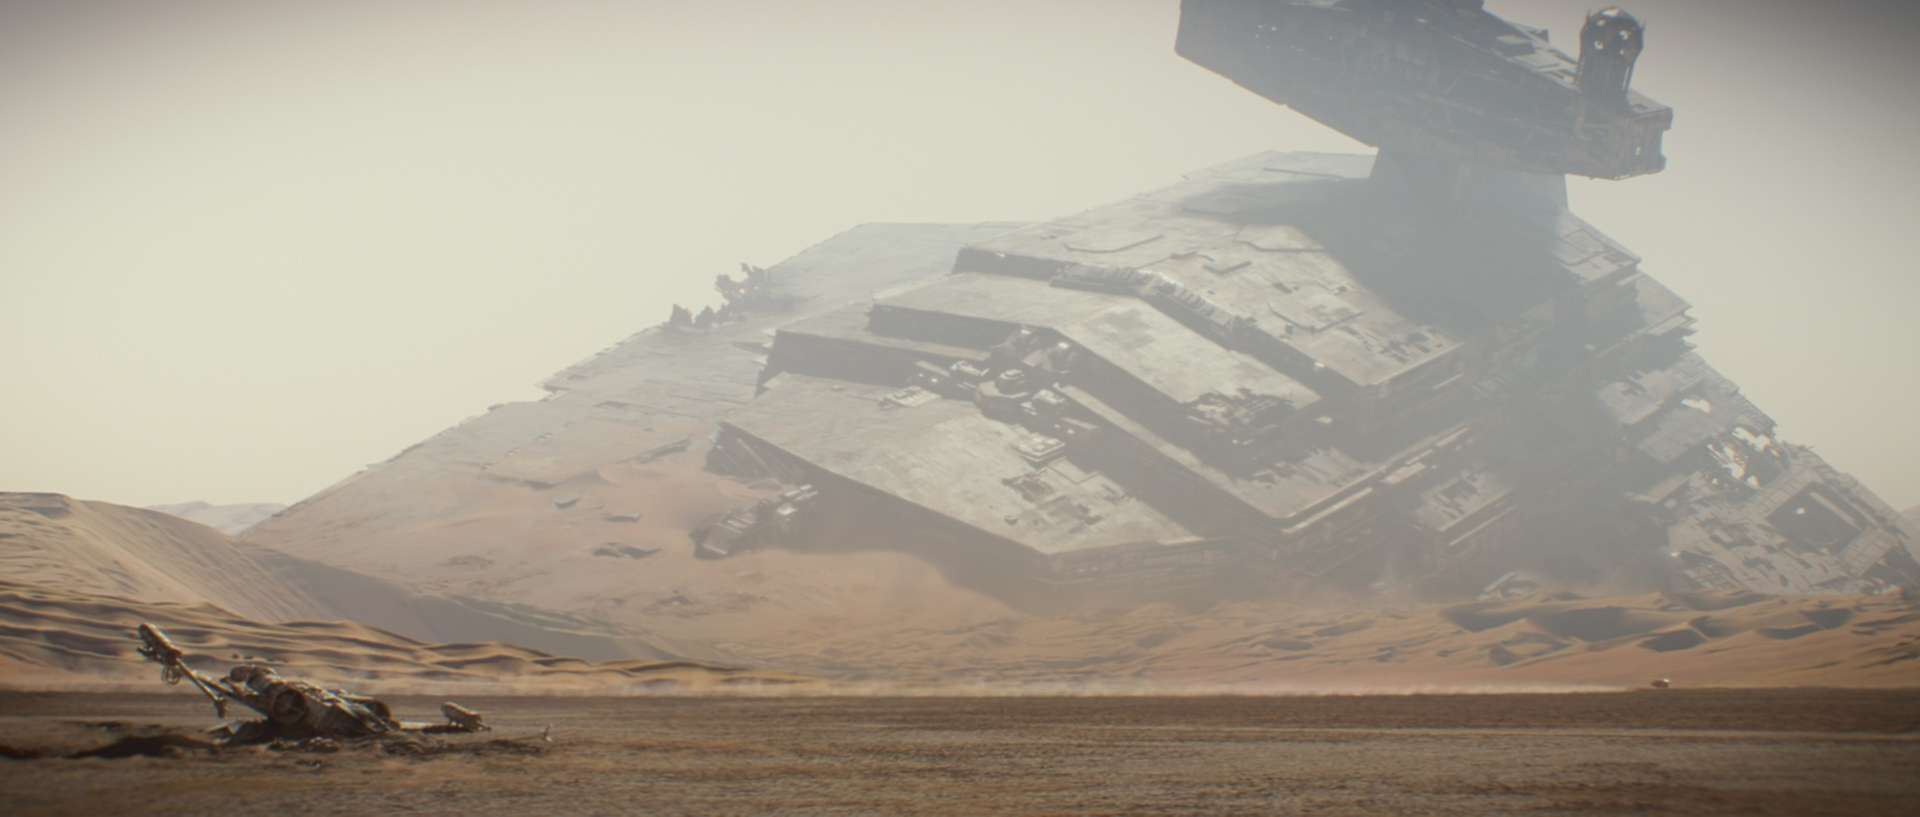 Star Wars Episode VII The Force Awakens Wallpaper 014